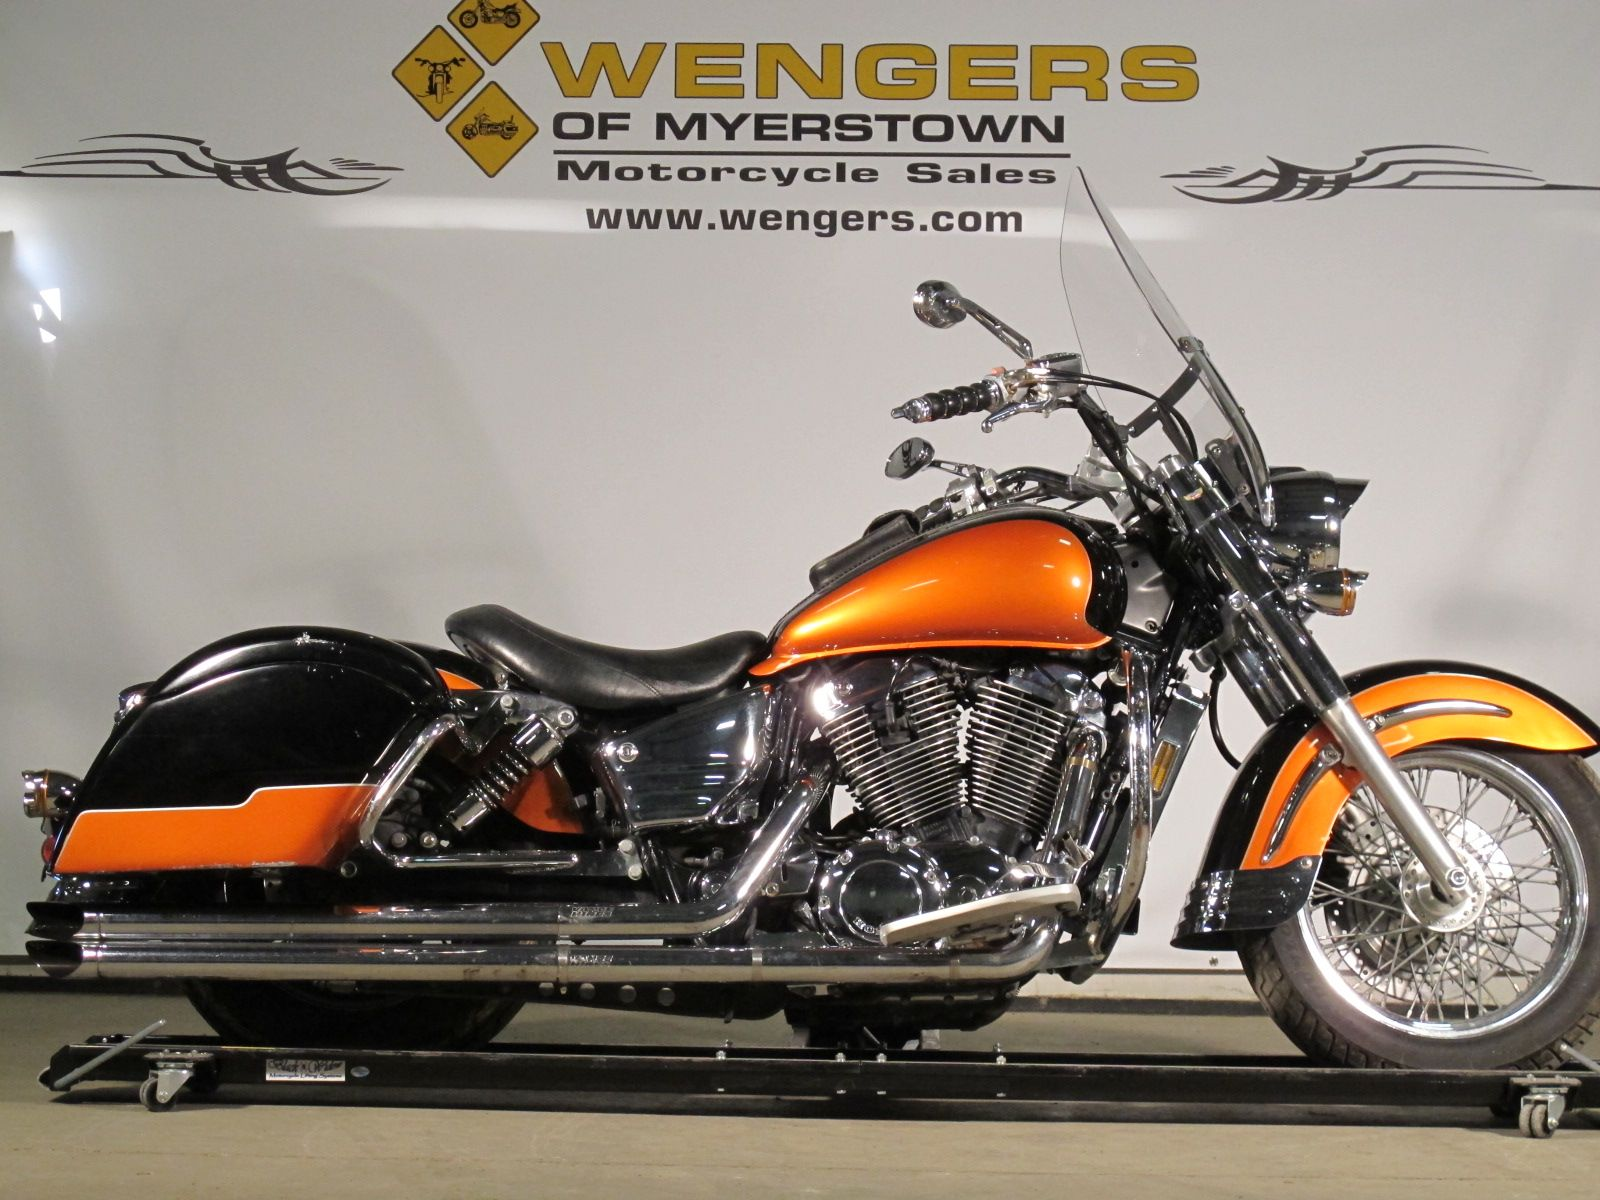 hight resolution of 2002 honda shadow aero 1100 for sale at wengers of myerstown motorcycle sales only 4 799 sold